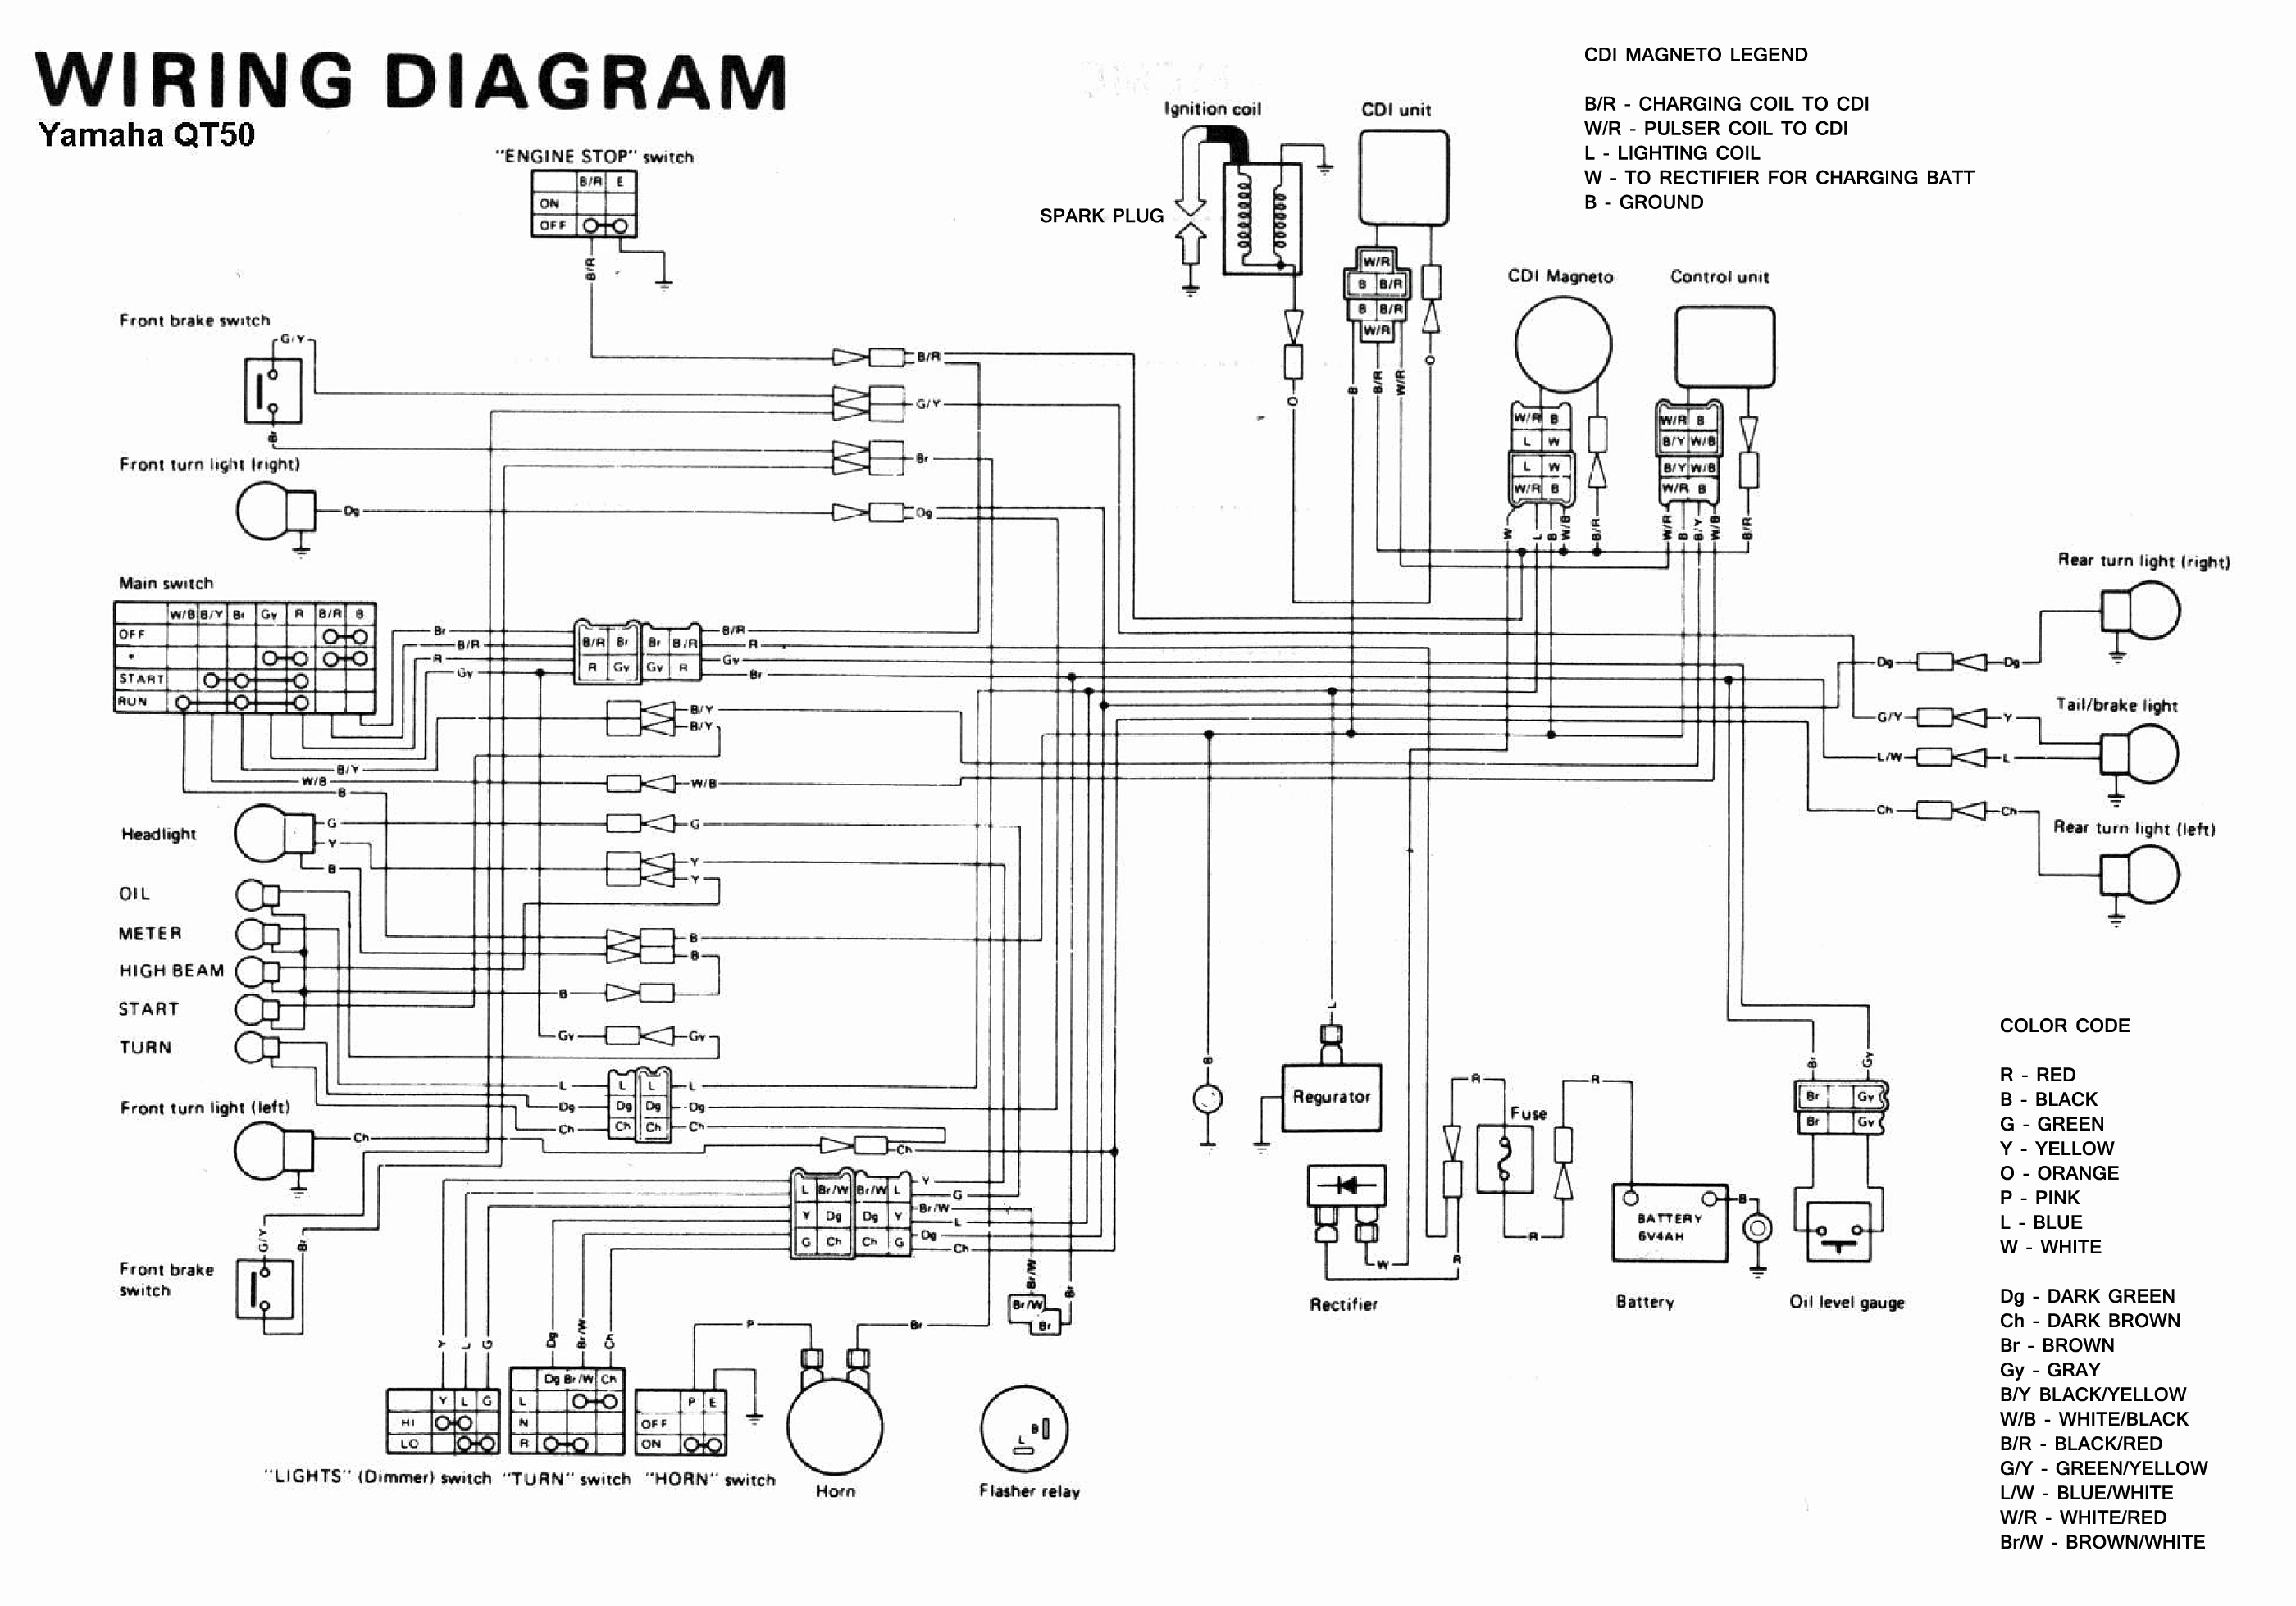 Wiring Diagram Yamaha : Free yamaha warrior atv wiring diagrams